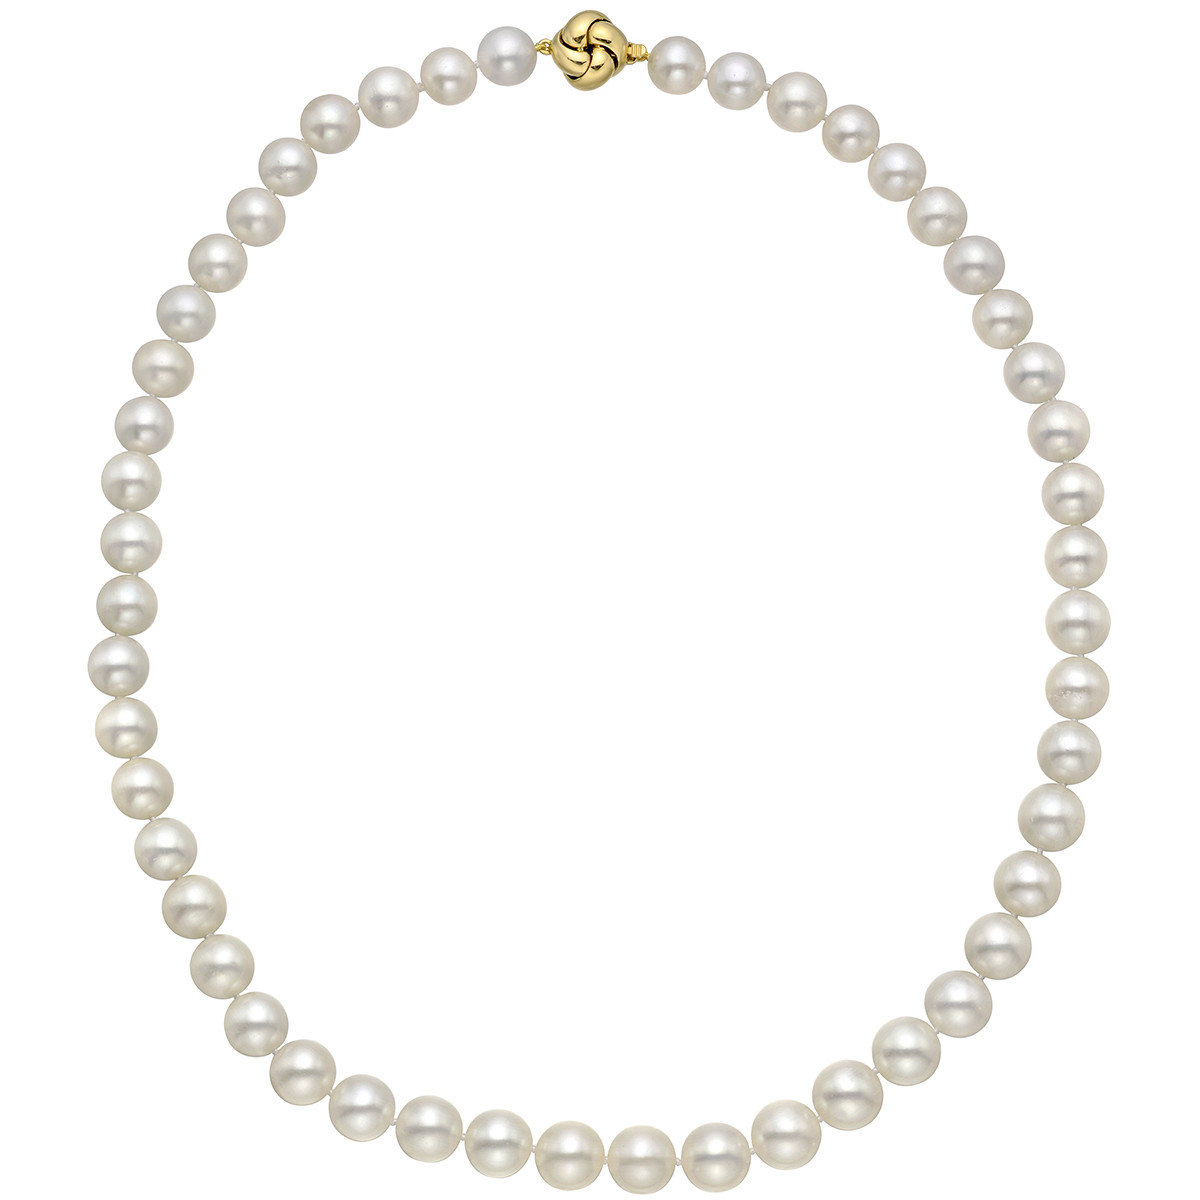 Cultured Pearl Necklace with 18k Yellow Gold Clasp